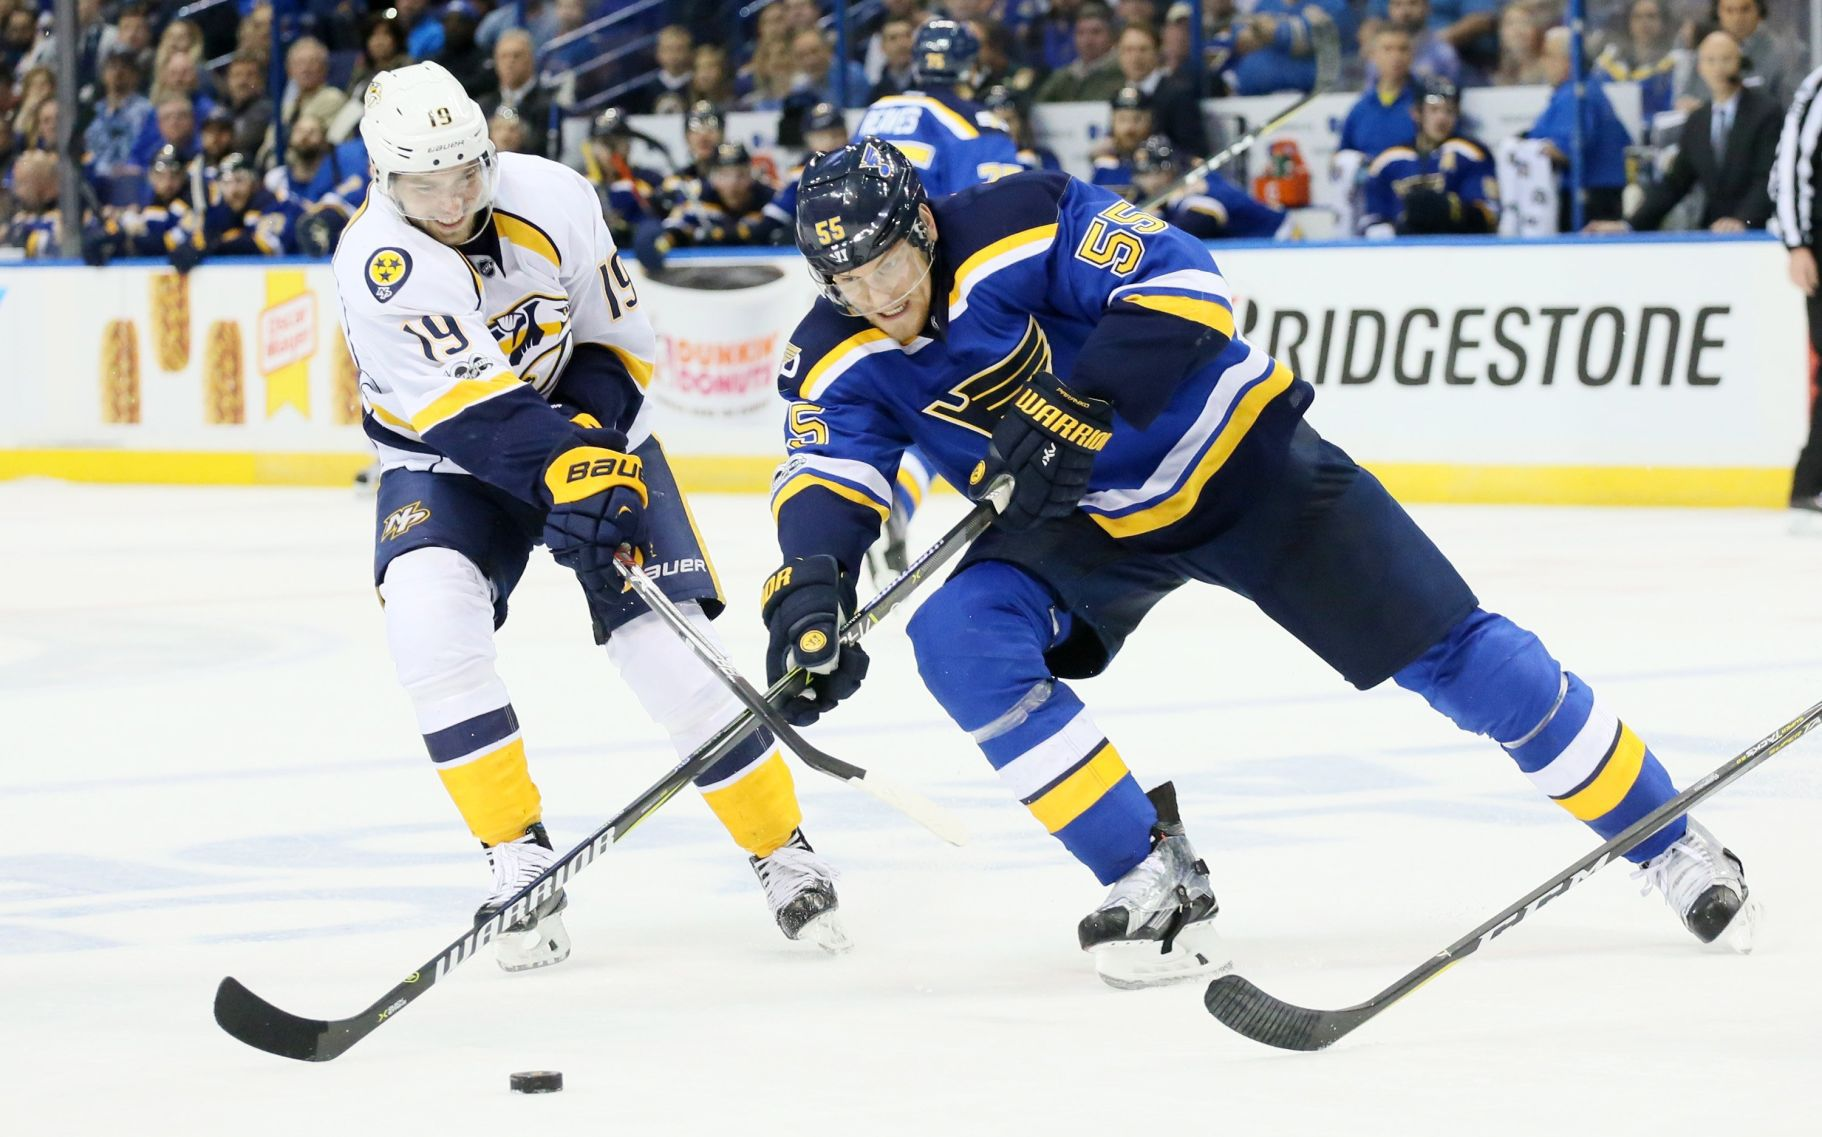 Defenseman Colton Parayko, Blues agree on 5-year deal